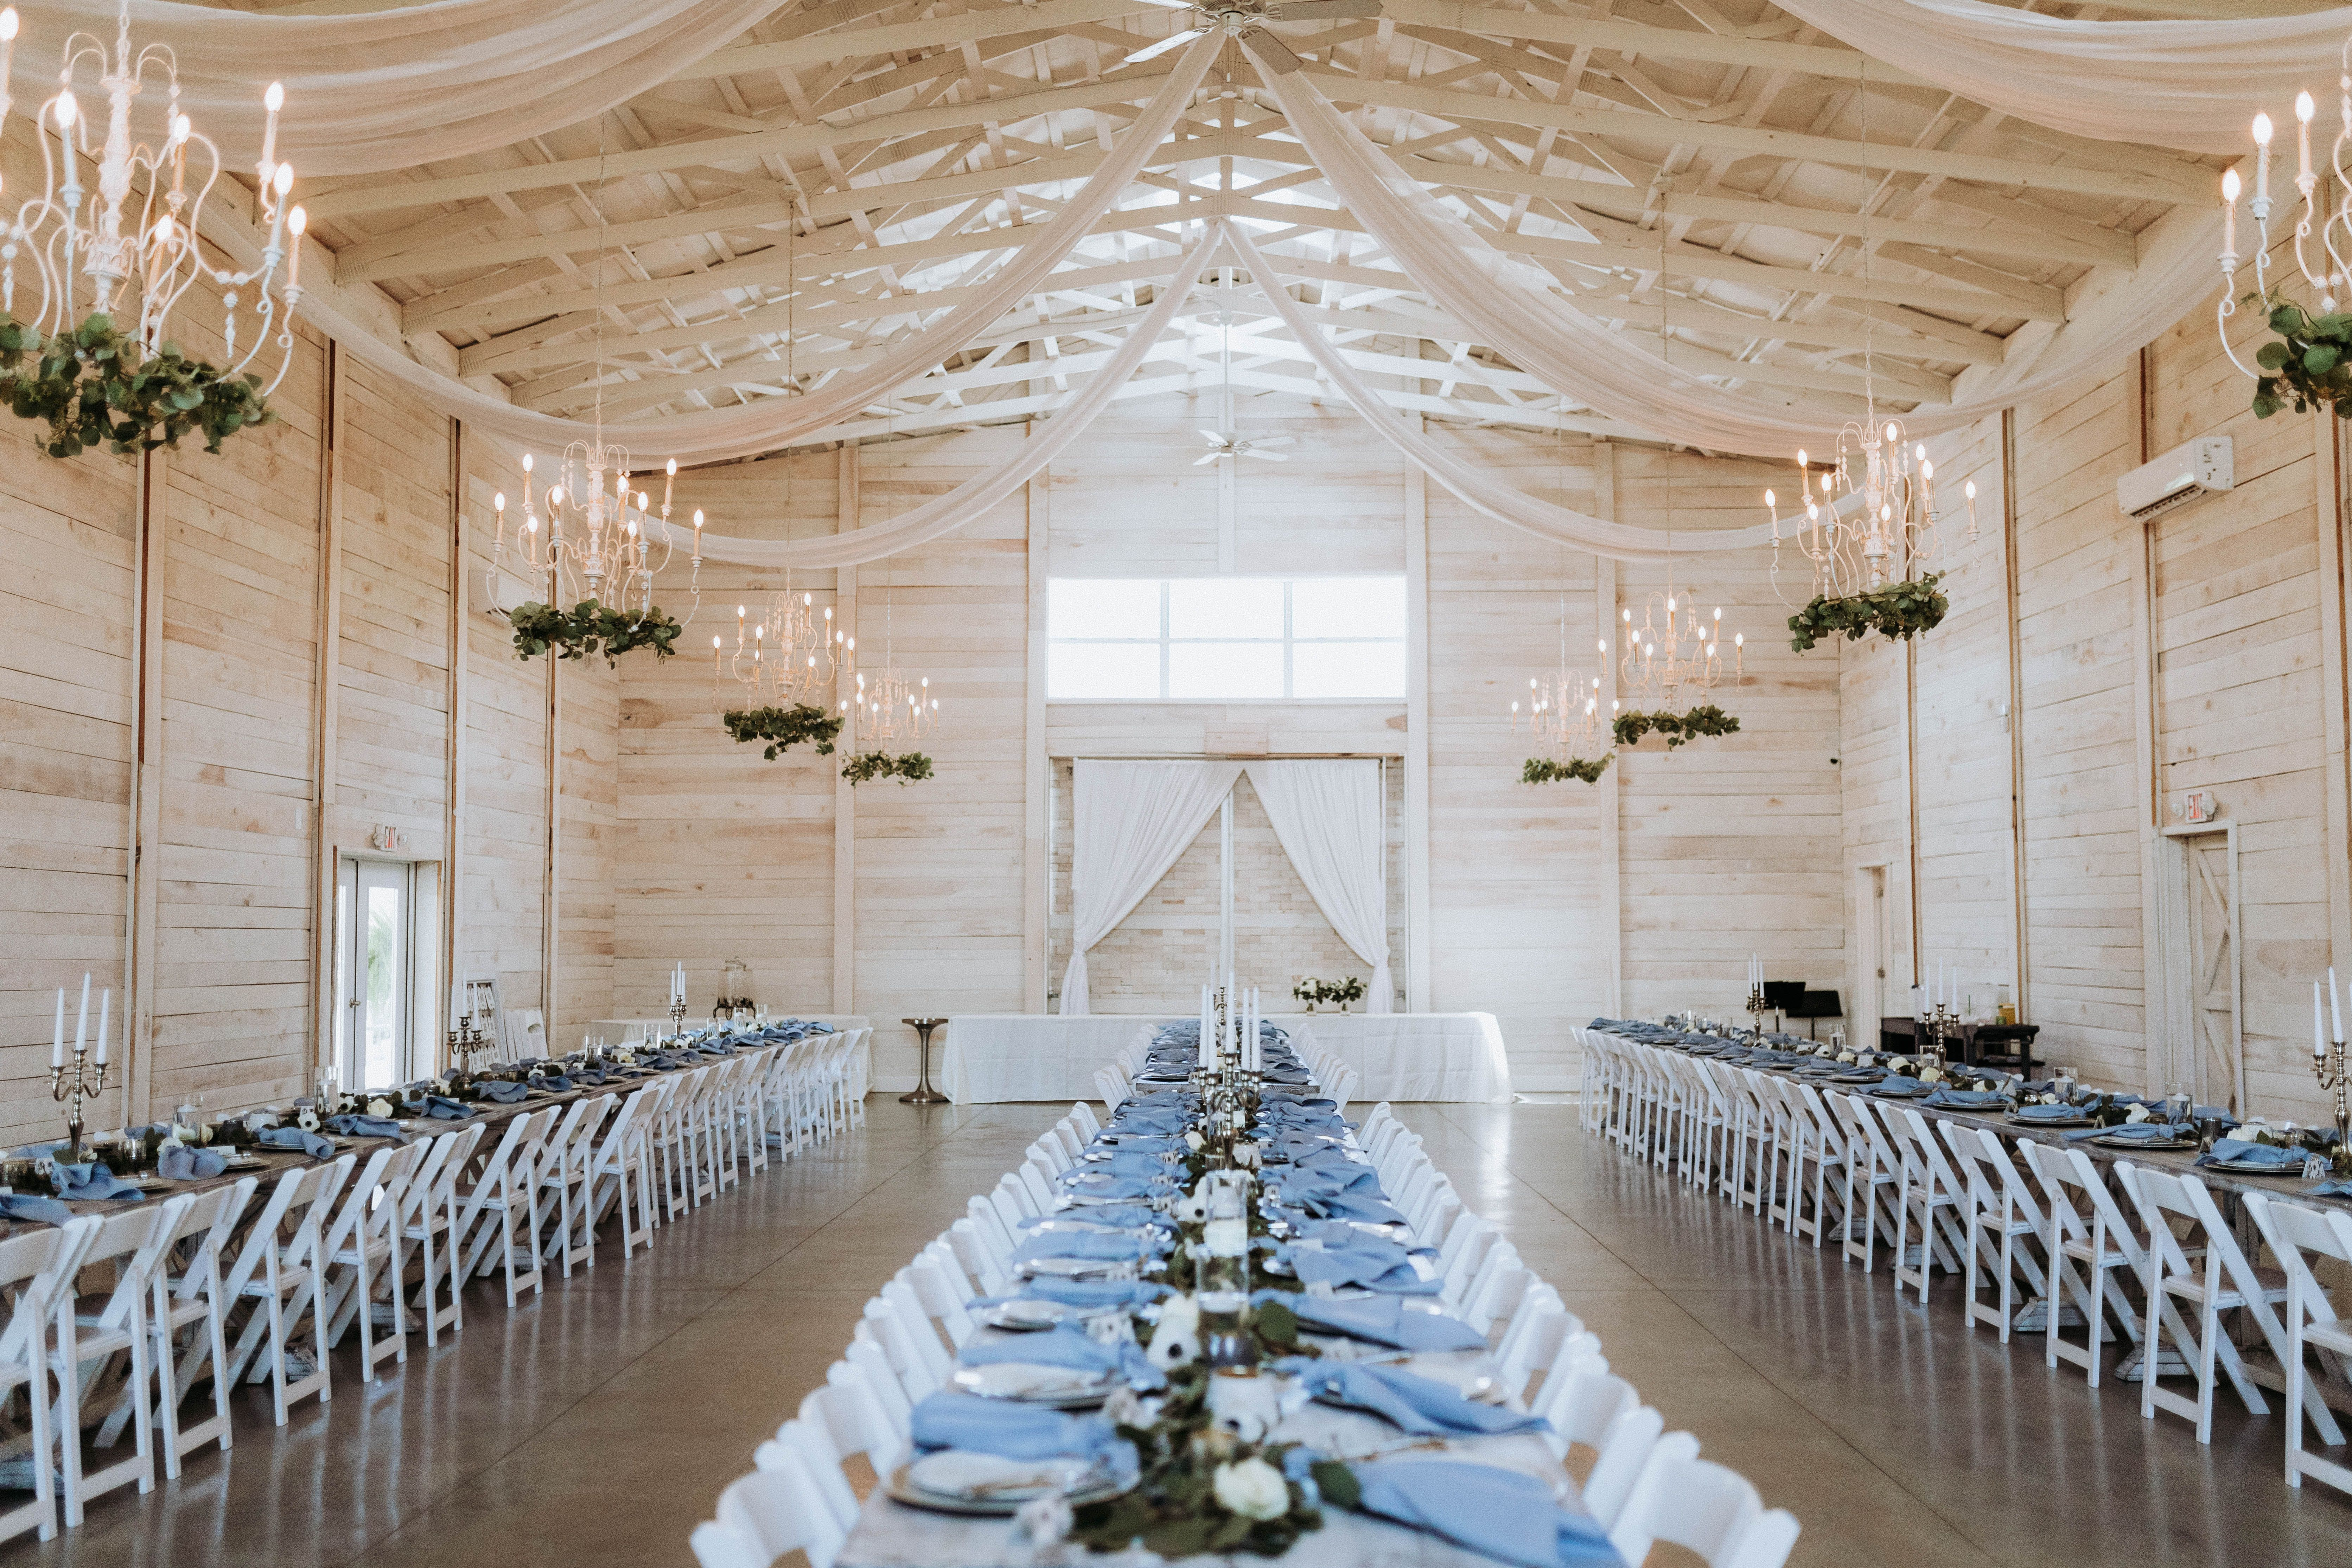 Baby Blue Themed Wedding Reception In 2020 Blue Themed Wedding Reception Blue Themed Wedding Wedding Venues